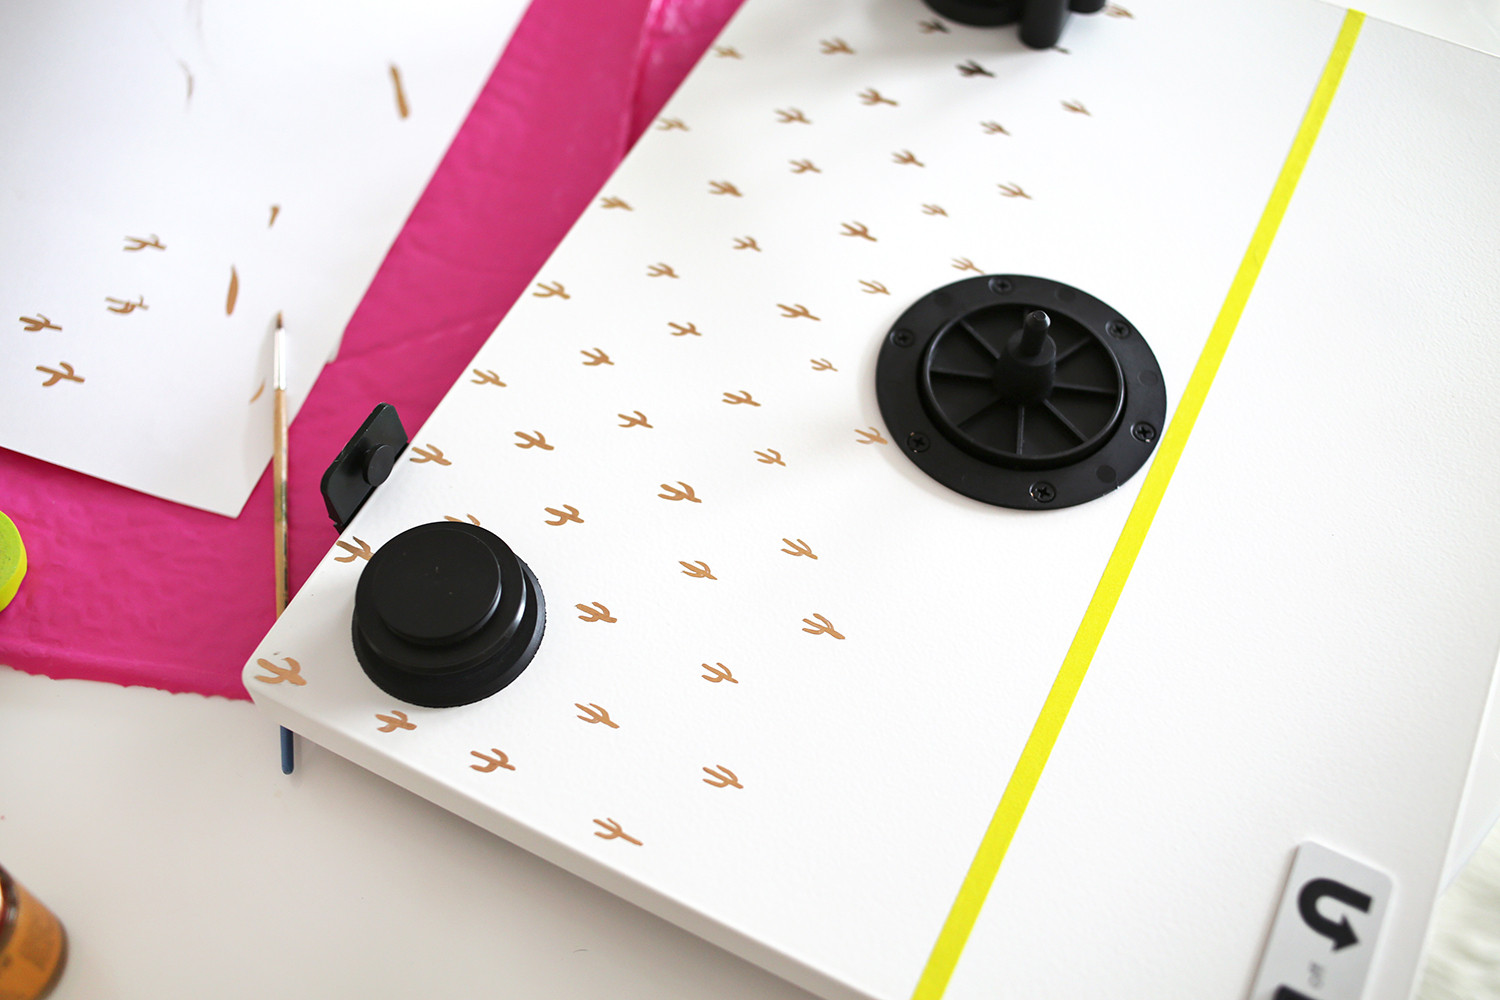 How to customize a turntable